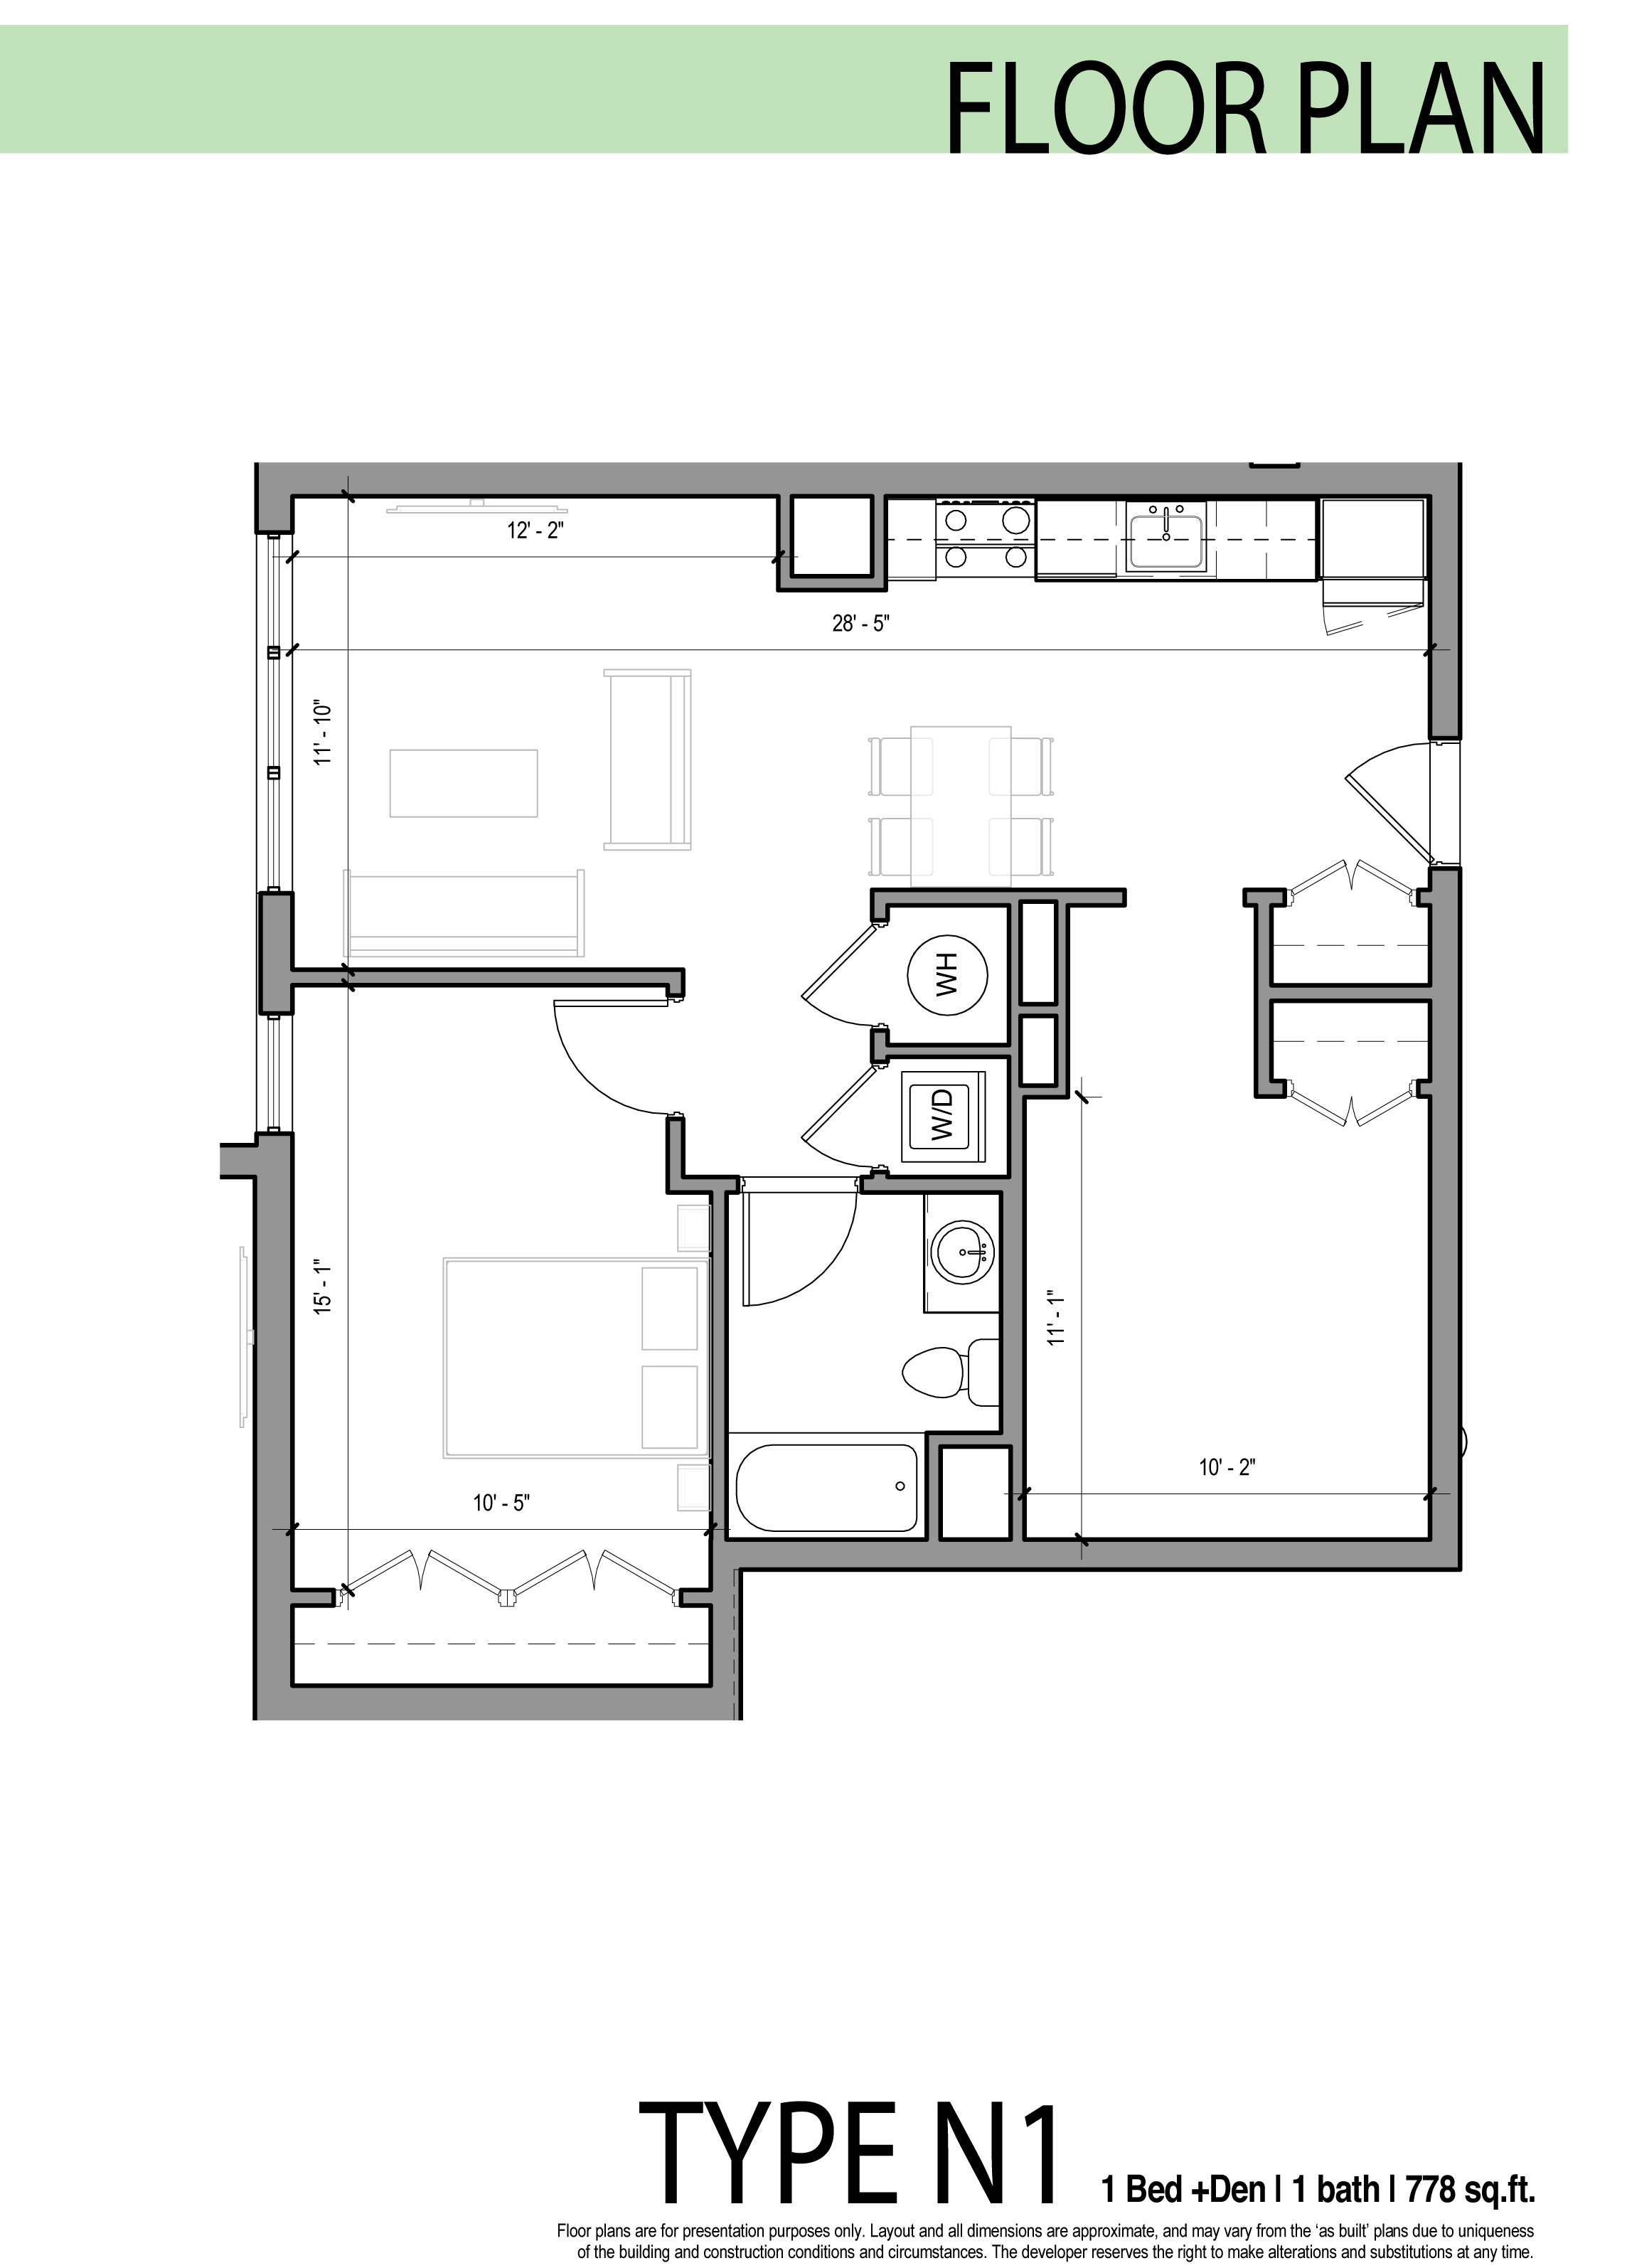 Edge allston floor plans for Floor blueprint